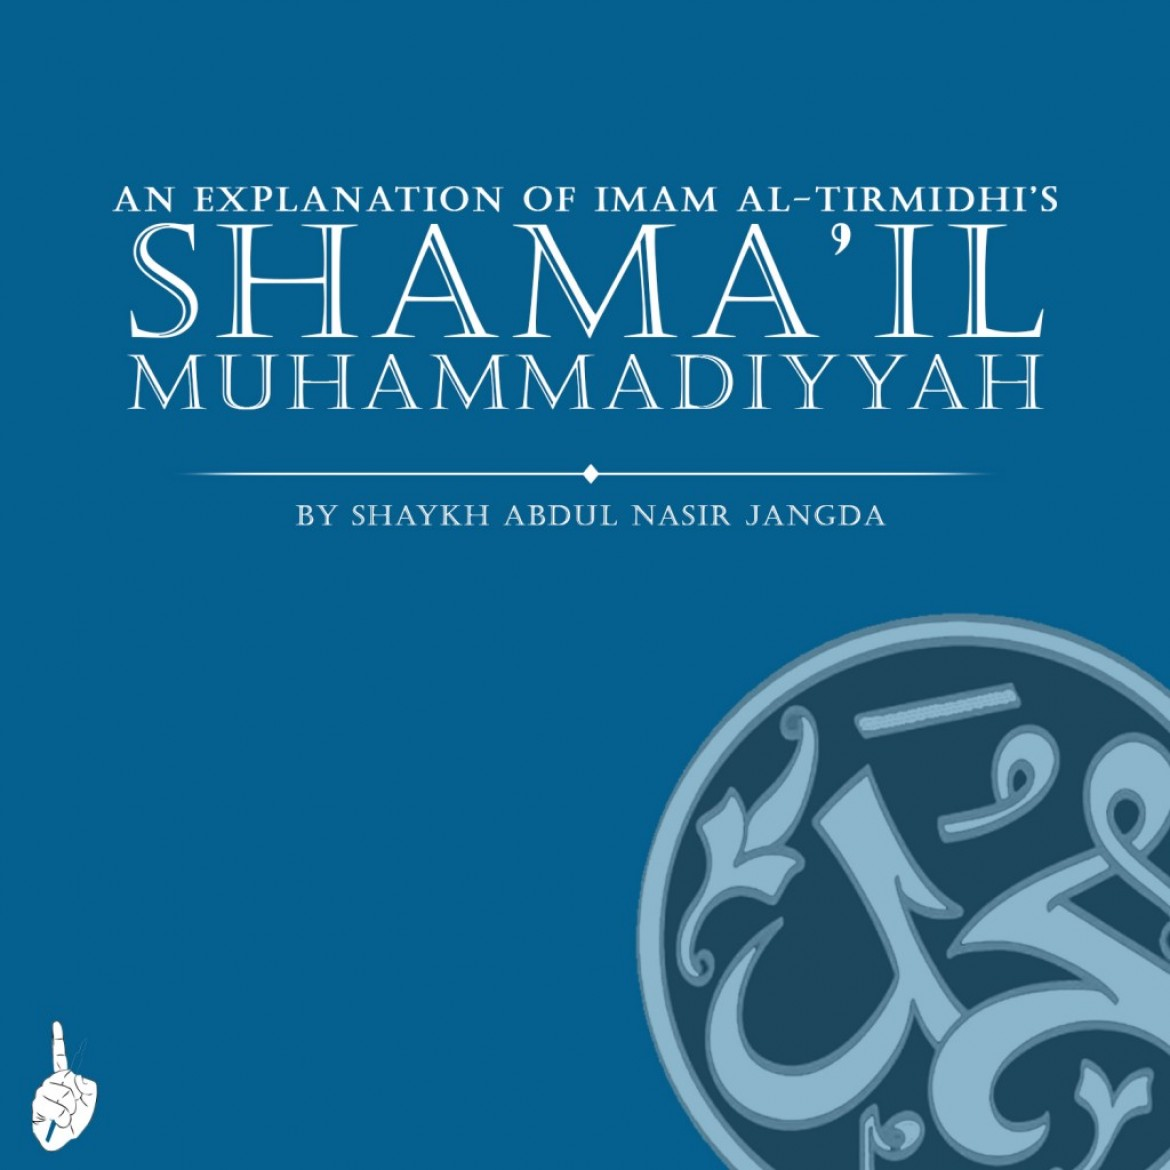 Shama'il Muhammadiyah:The seal of Prophethood